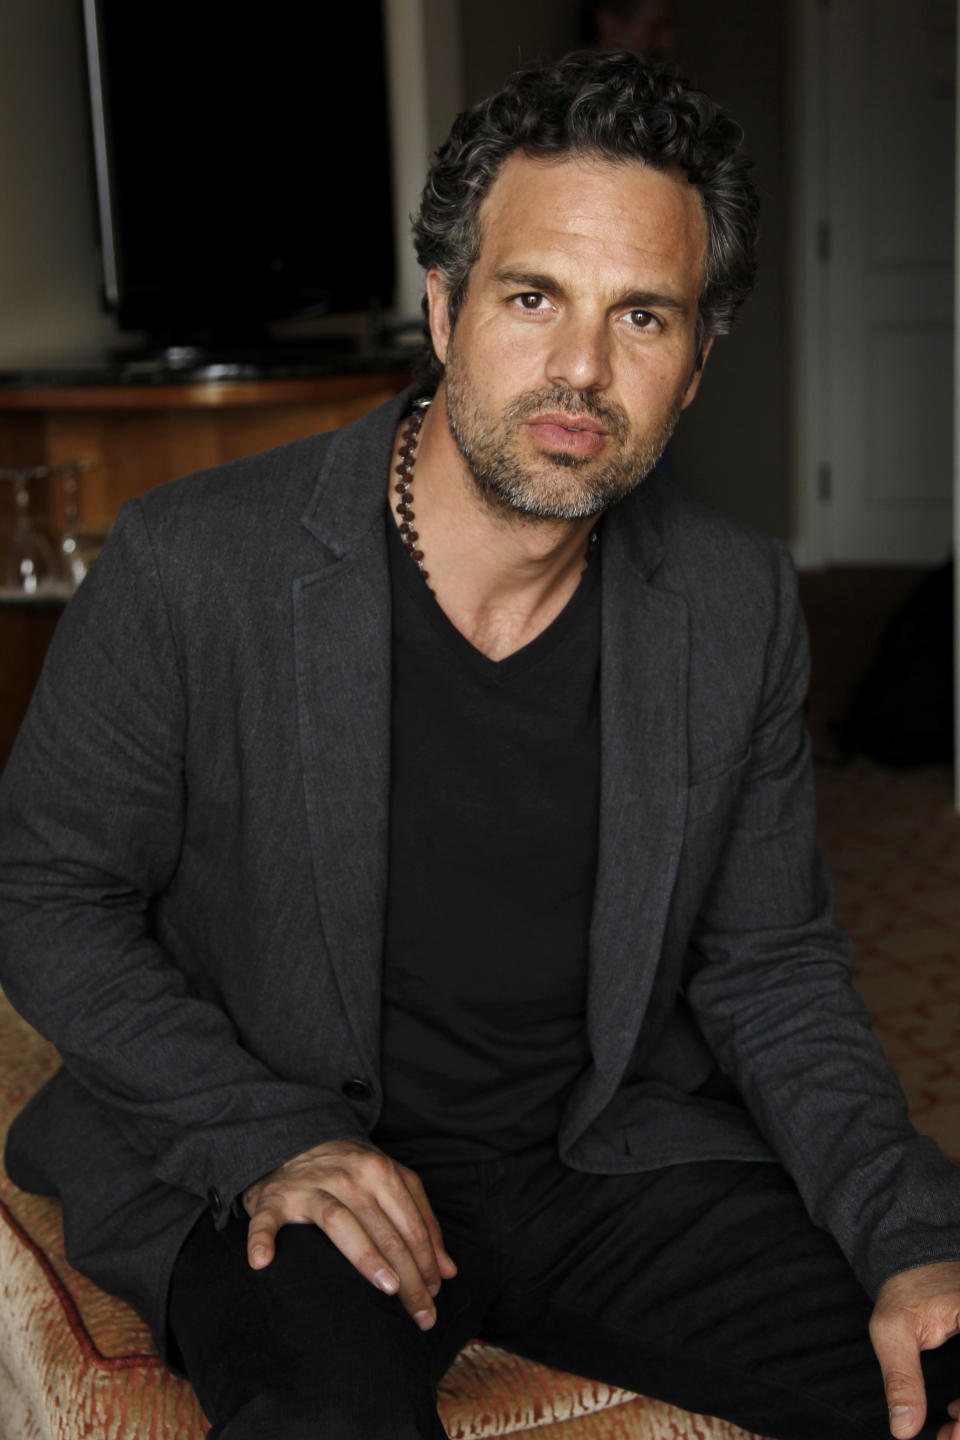 "In this April 12, 2012 photo, cast member Mark Ruffalo, from the upcoming film ""The Avengers"", poses for a portrait in Beverly Hills, Calif. The film will be released in theaters on May 4. (AP Photo/Matt Sayles)"